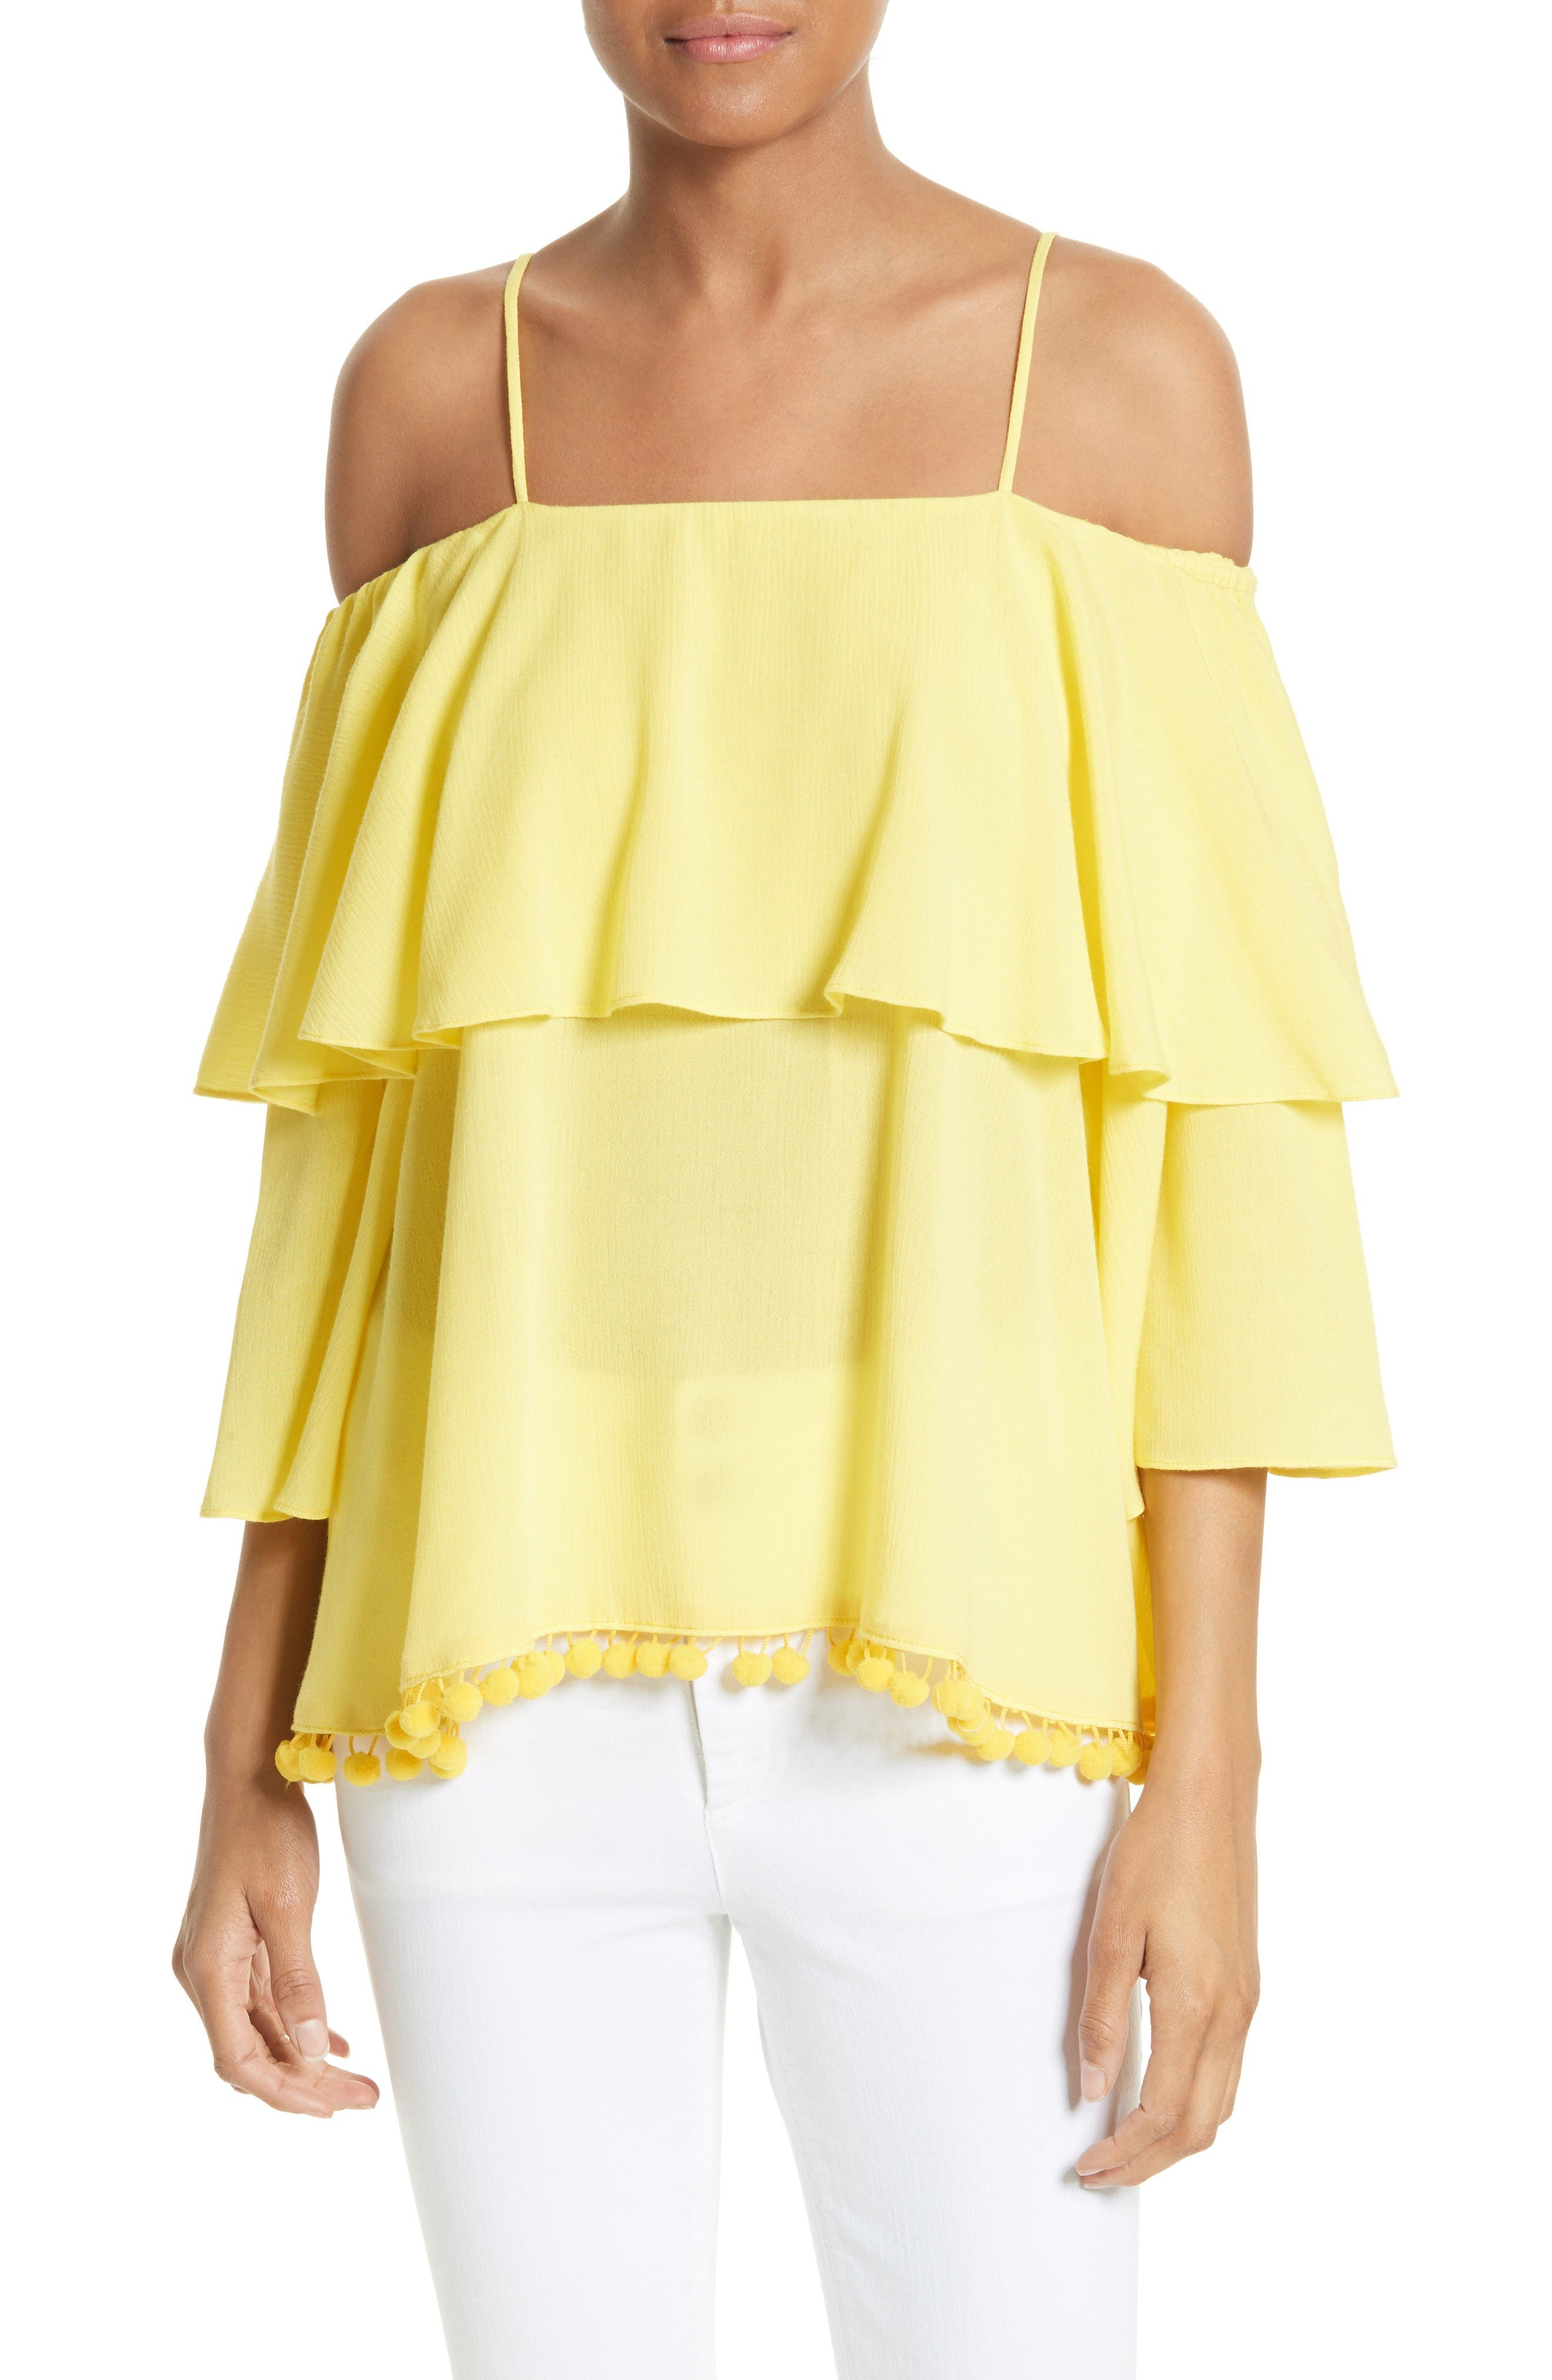 Alternate Image 1 Selected - Alice + Olivia Meagan Tiered Blouse